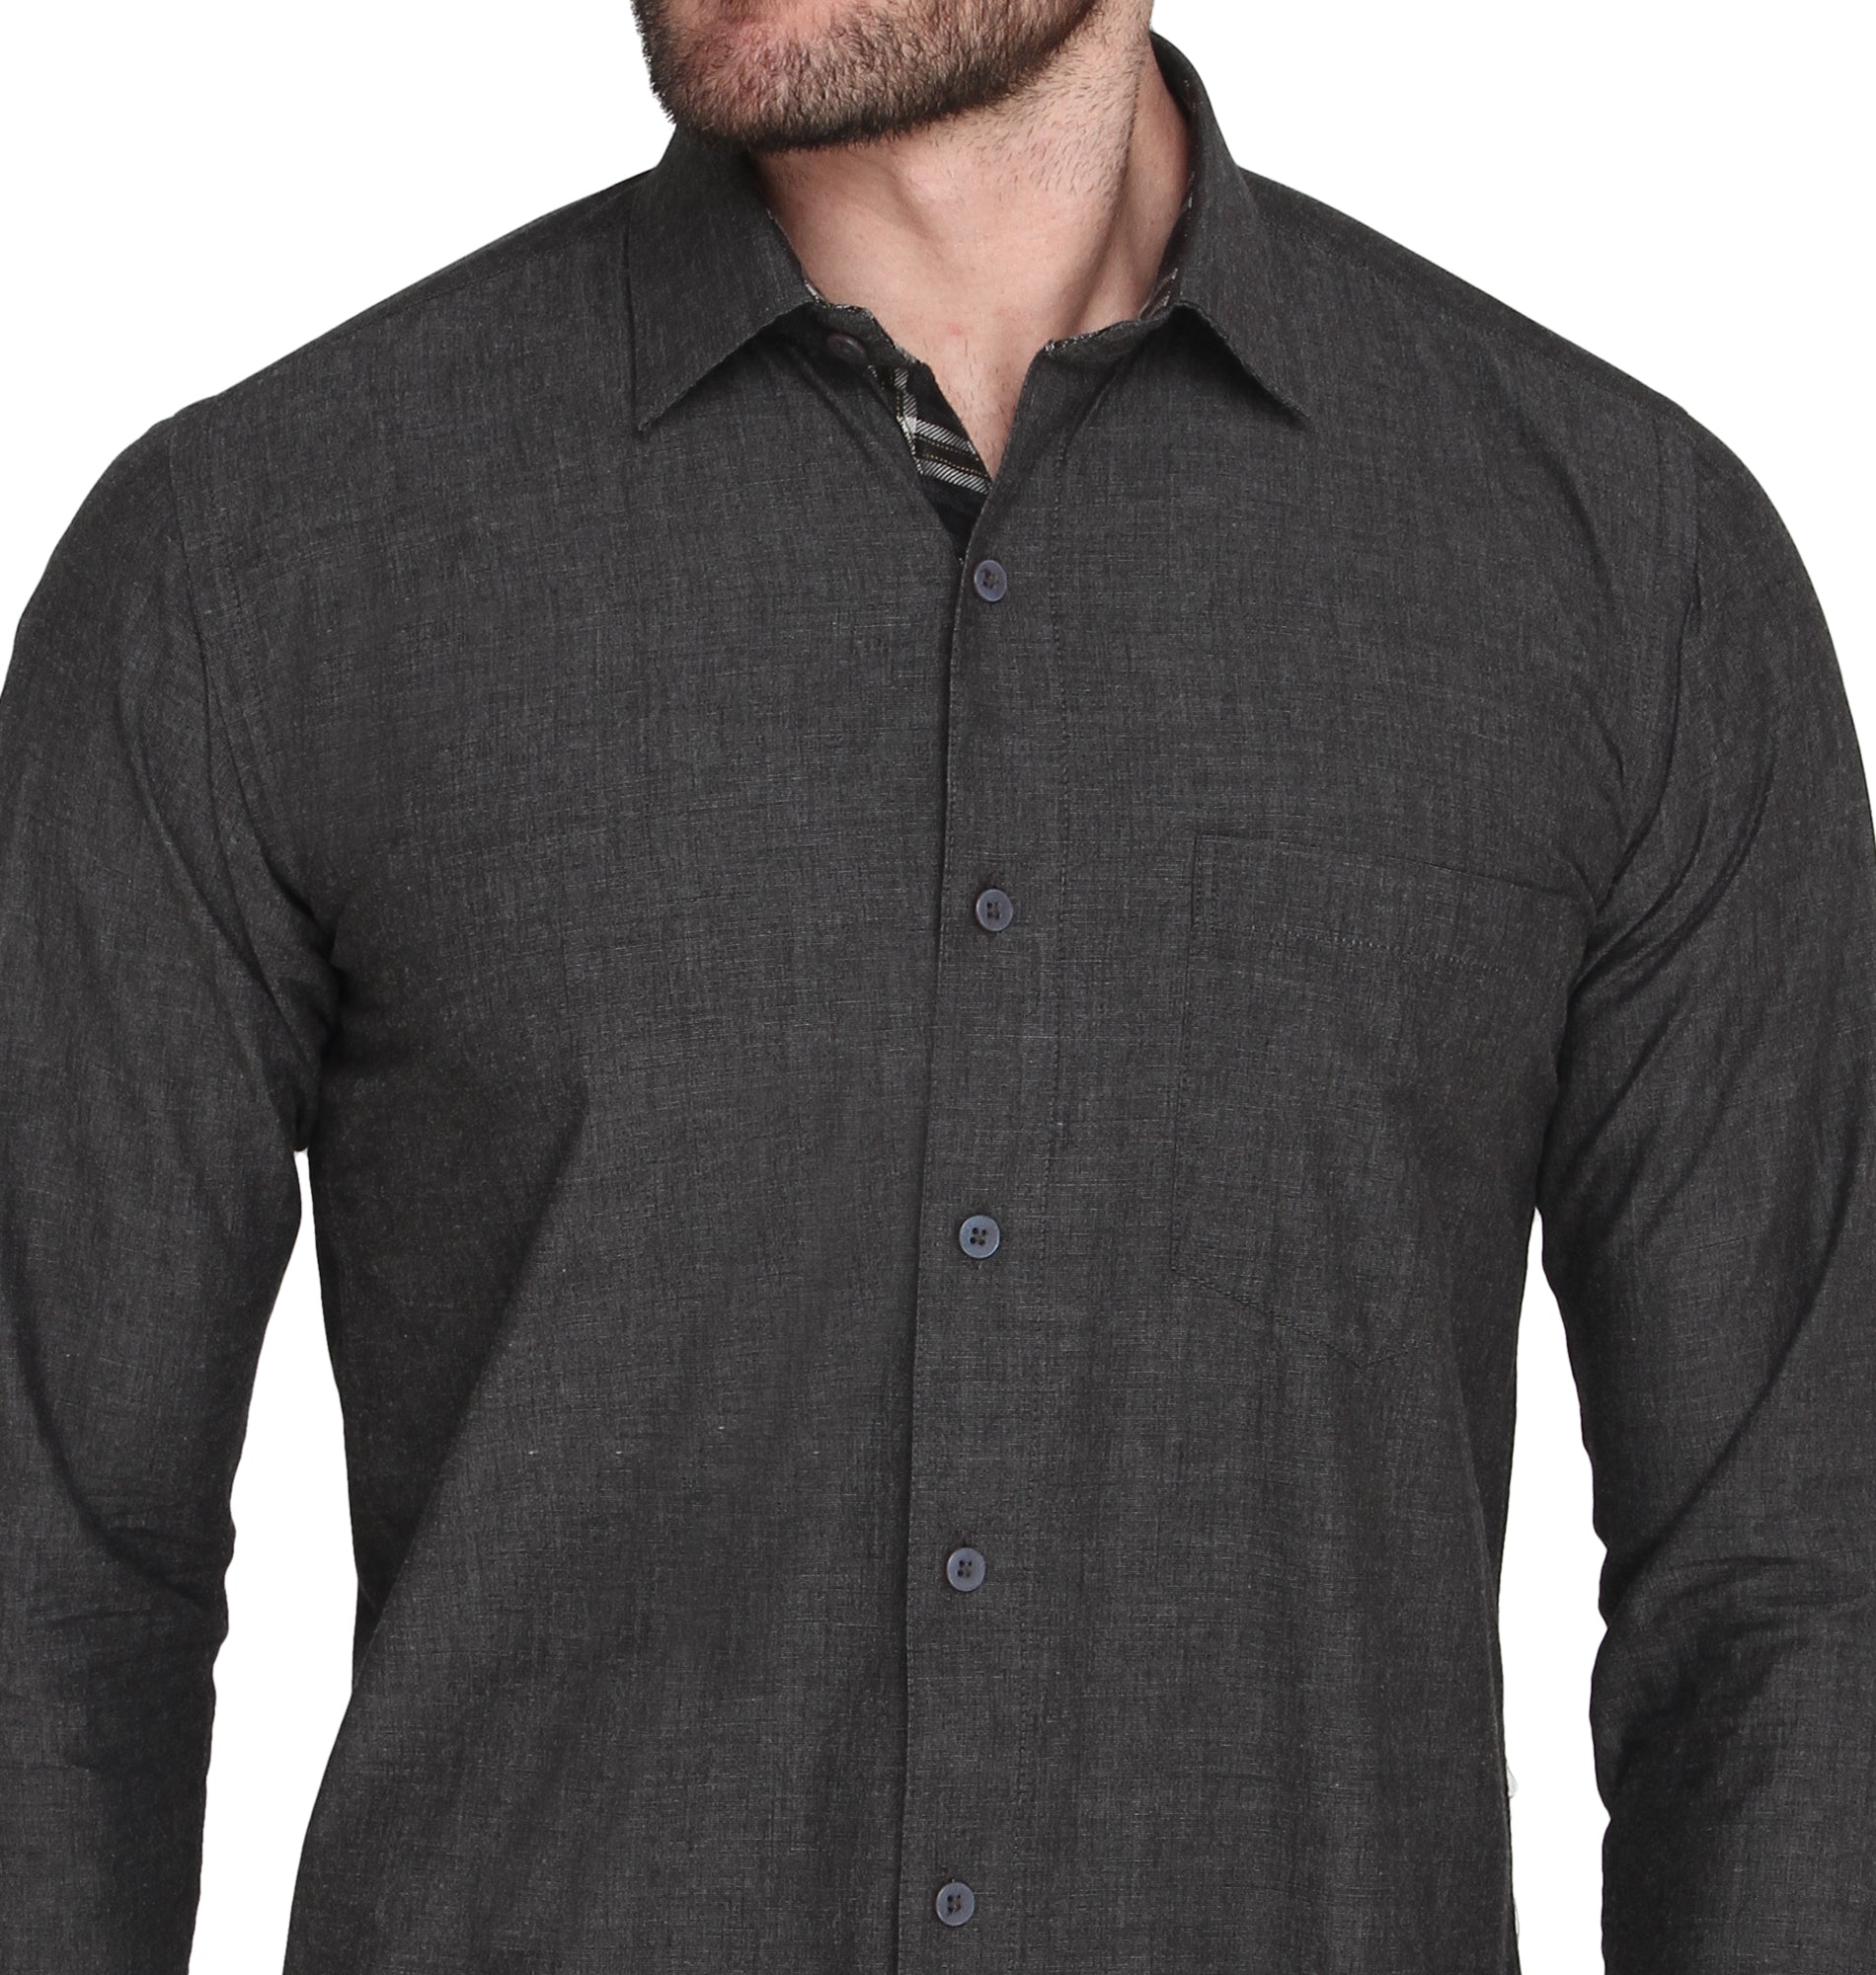 ZIDO COTTON Solid Shirt for Men's RFKC1377